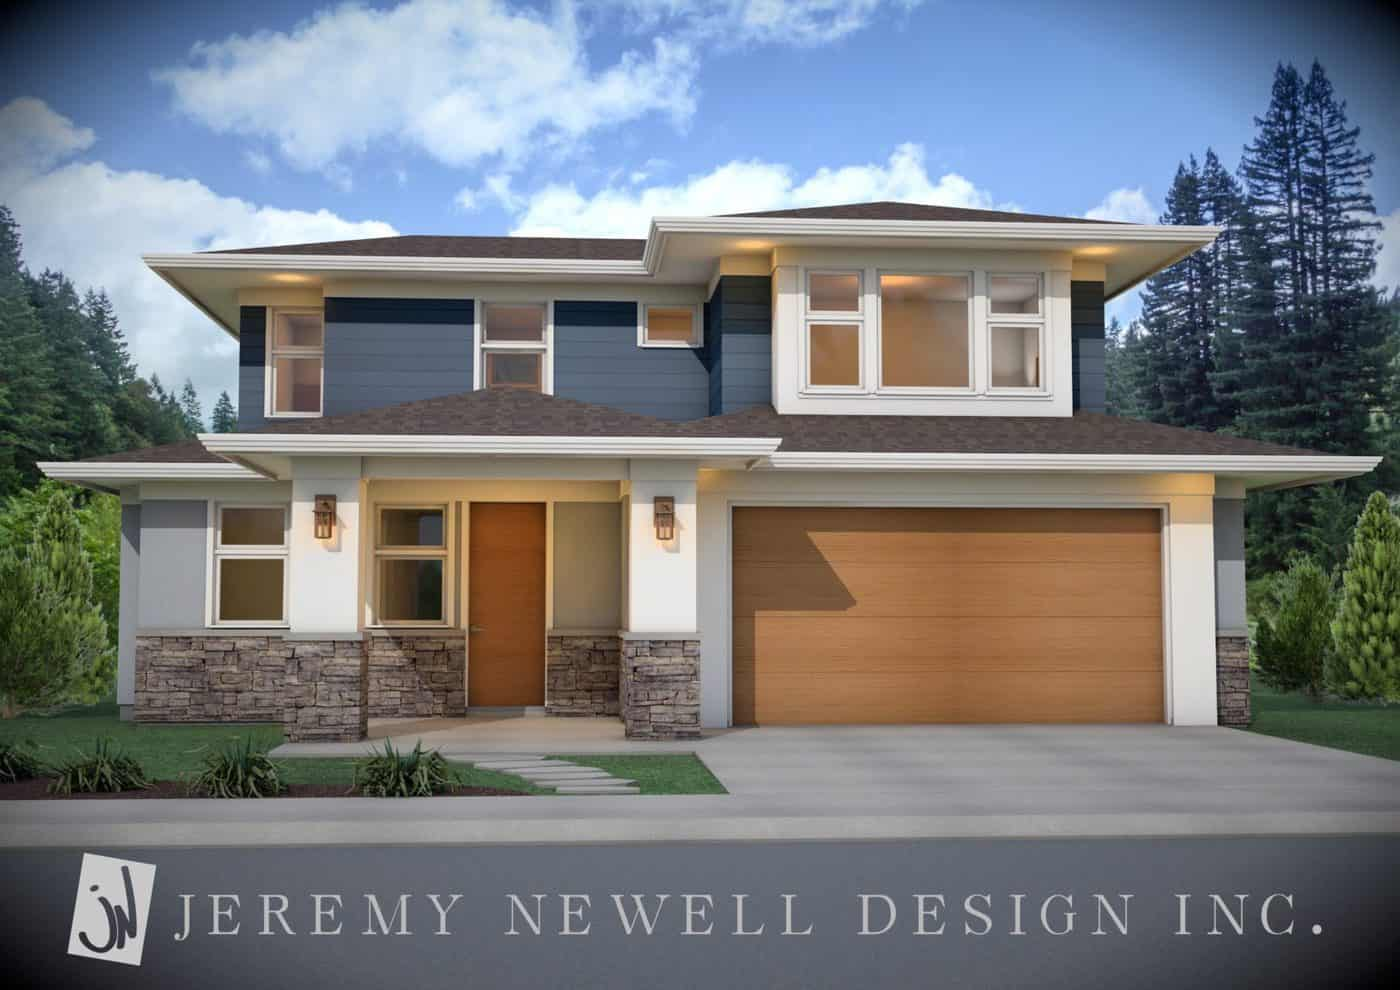 Okanagan modern 1 1 2 storey home by jeremy newell 5 for Estate plans designs